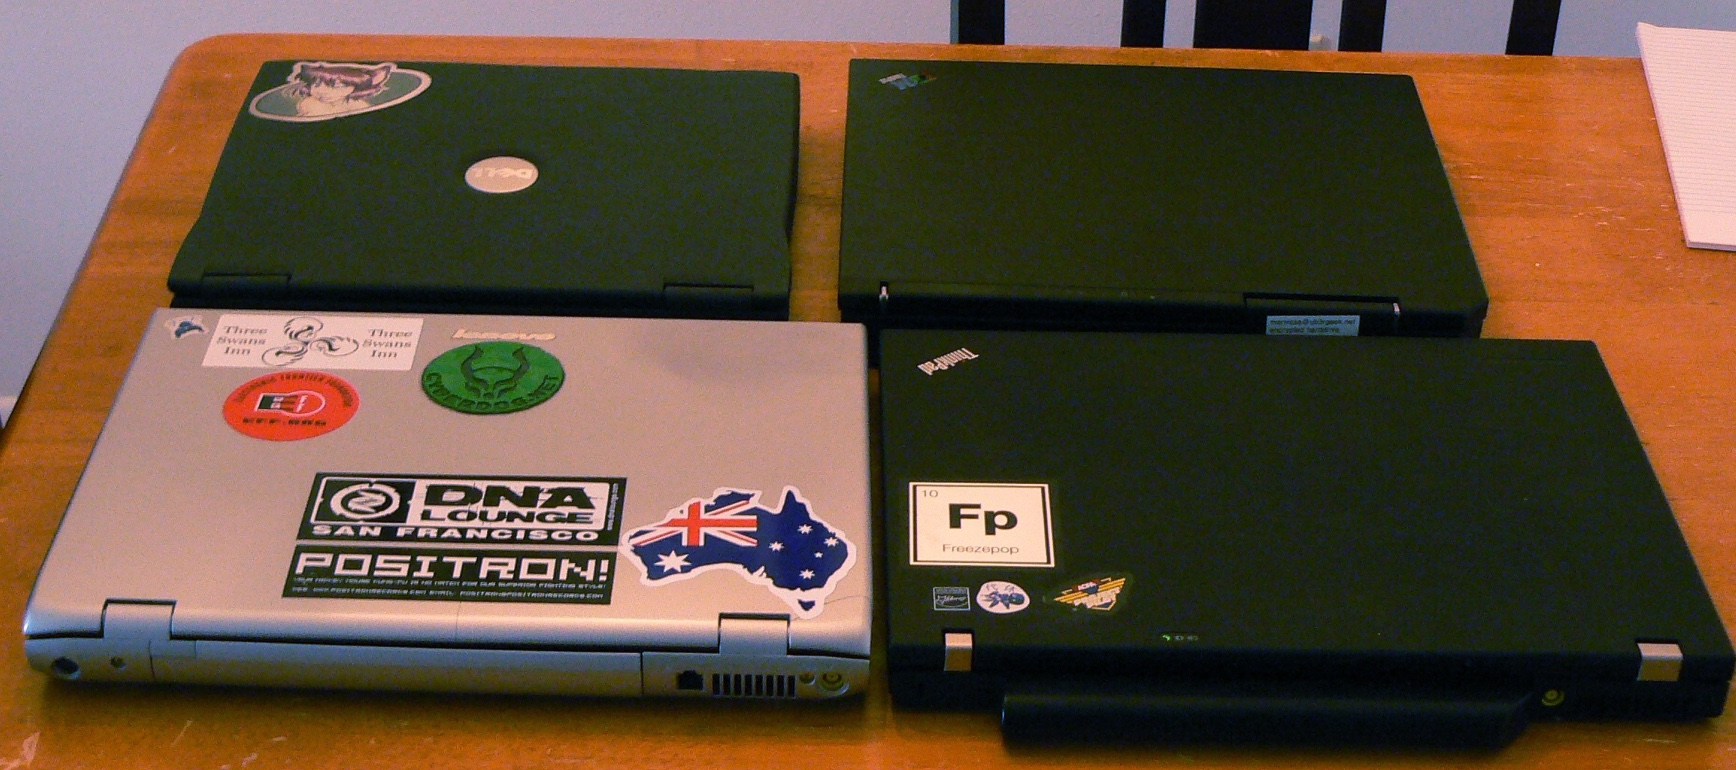 Old Laptops